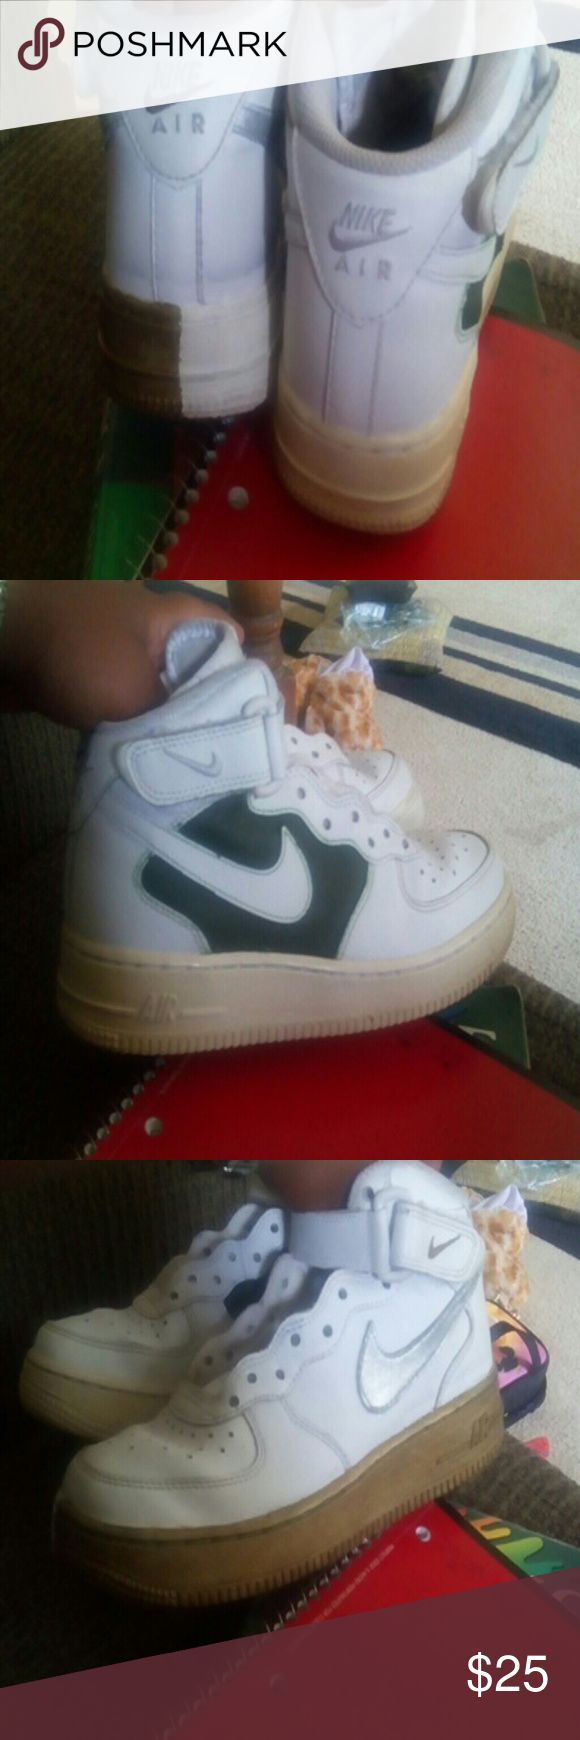 Air force 1 Custom air force 1 size 4 cheap obo air force 1  Shoes Sneakers